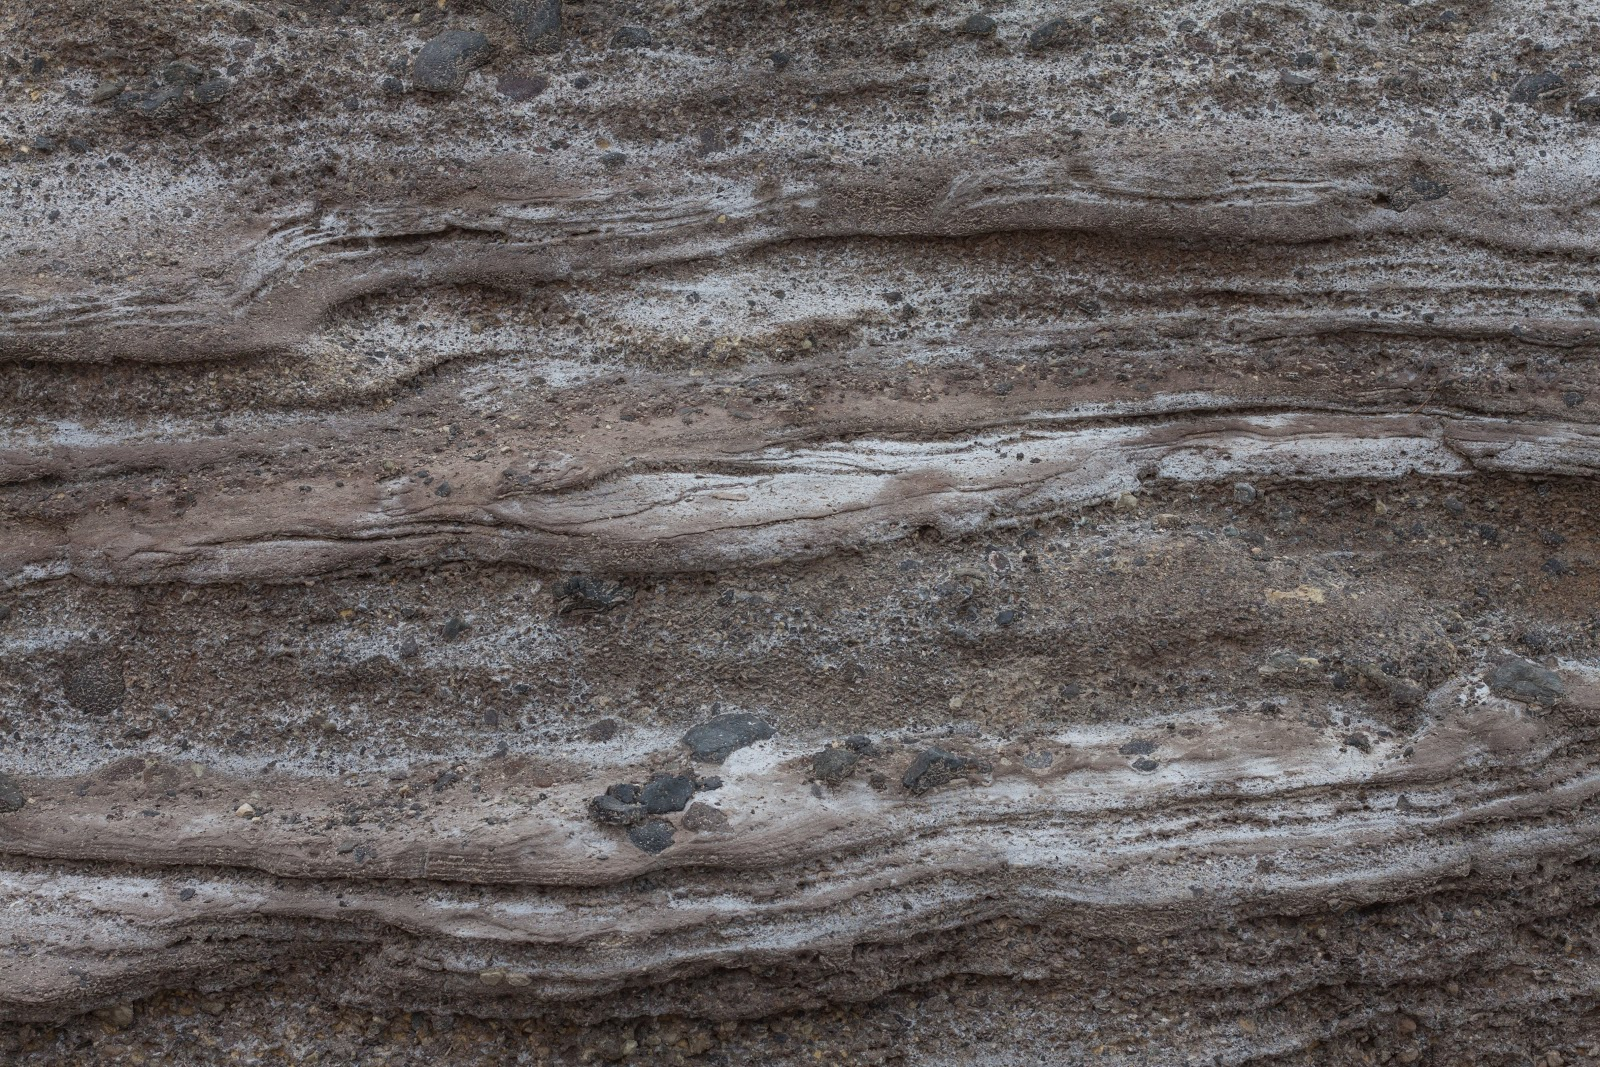 High Resolution Seamless Textures: Wavy rock wall texture